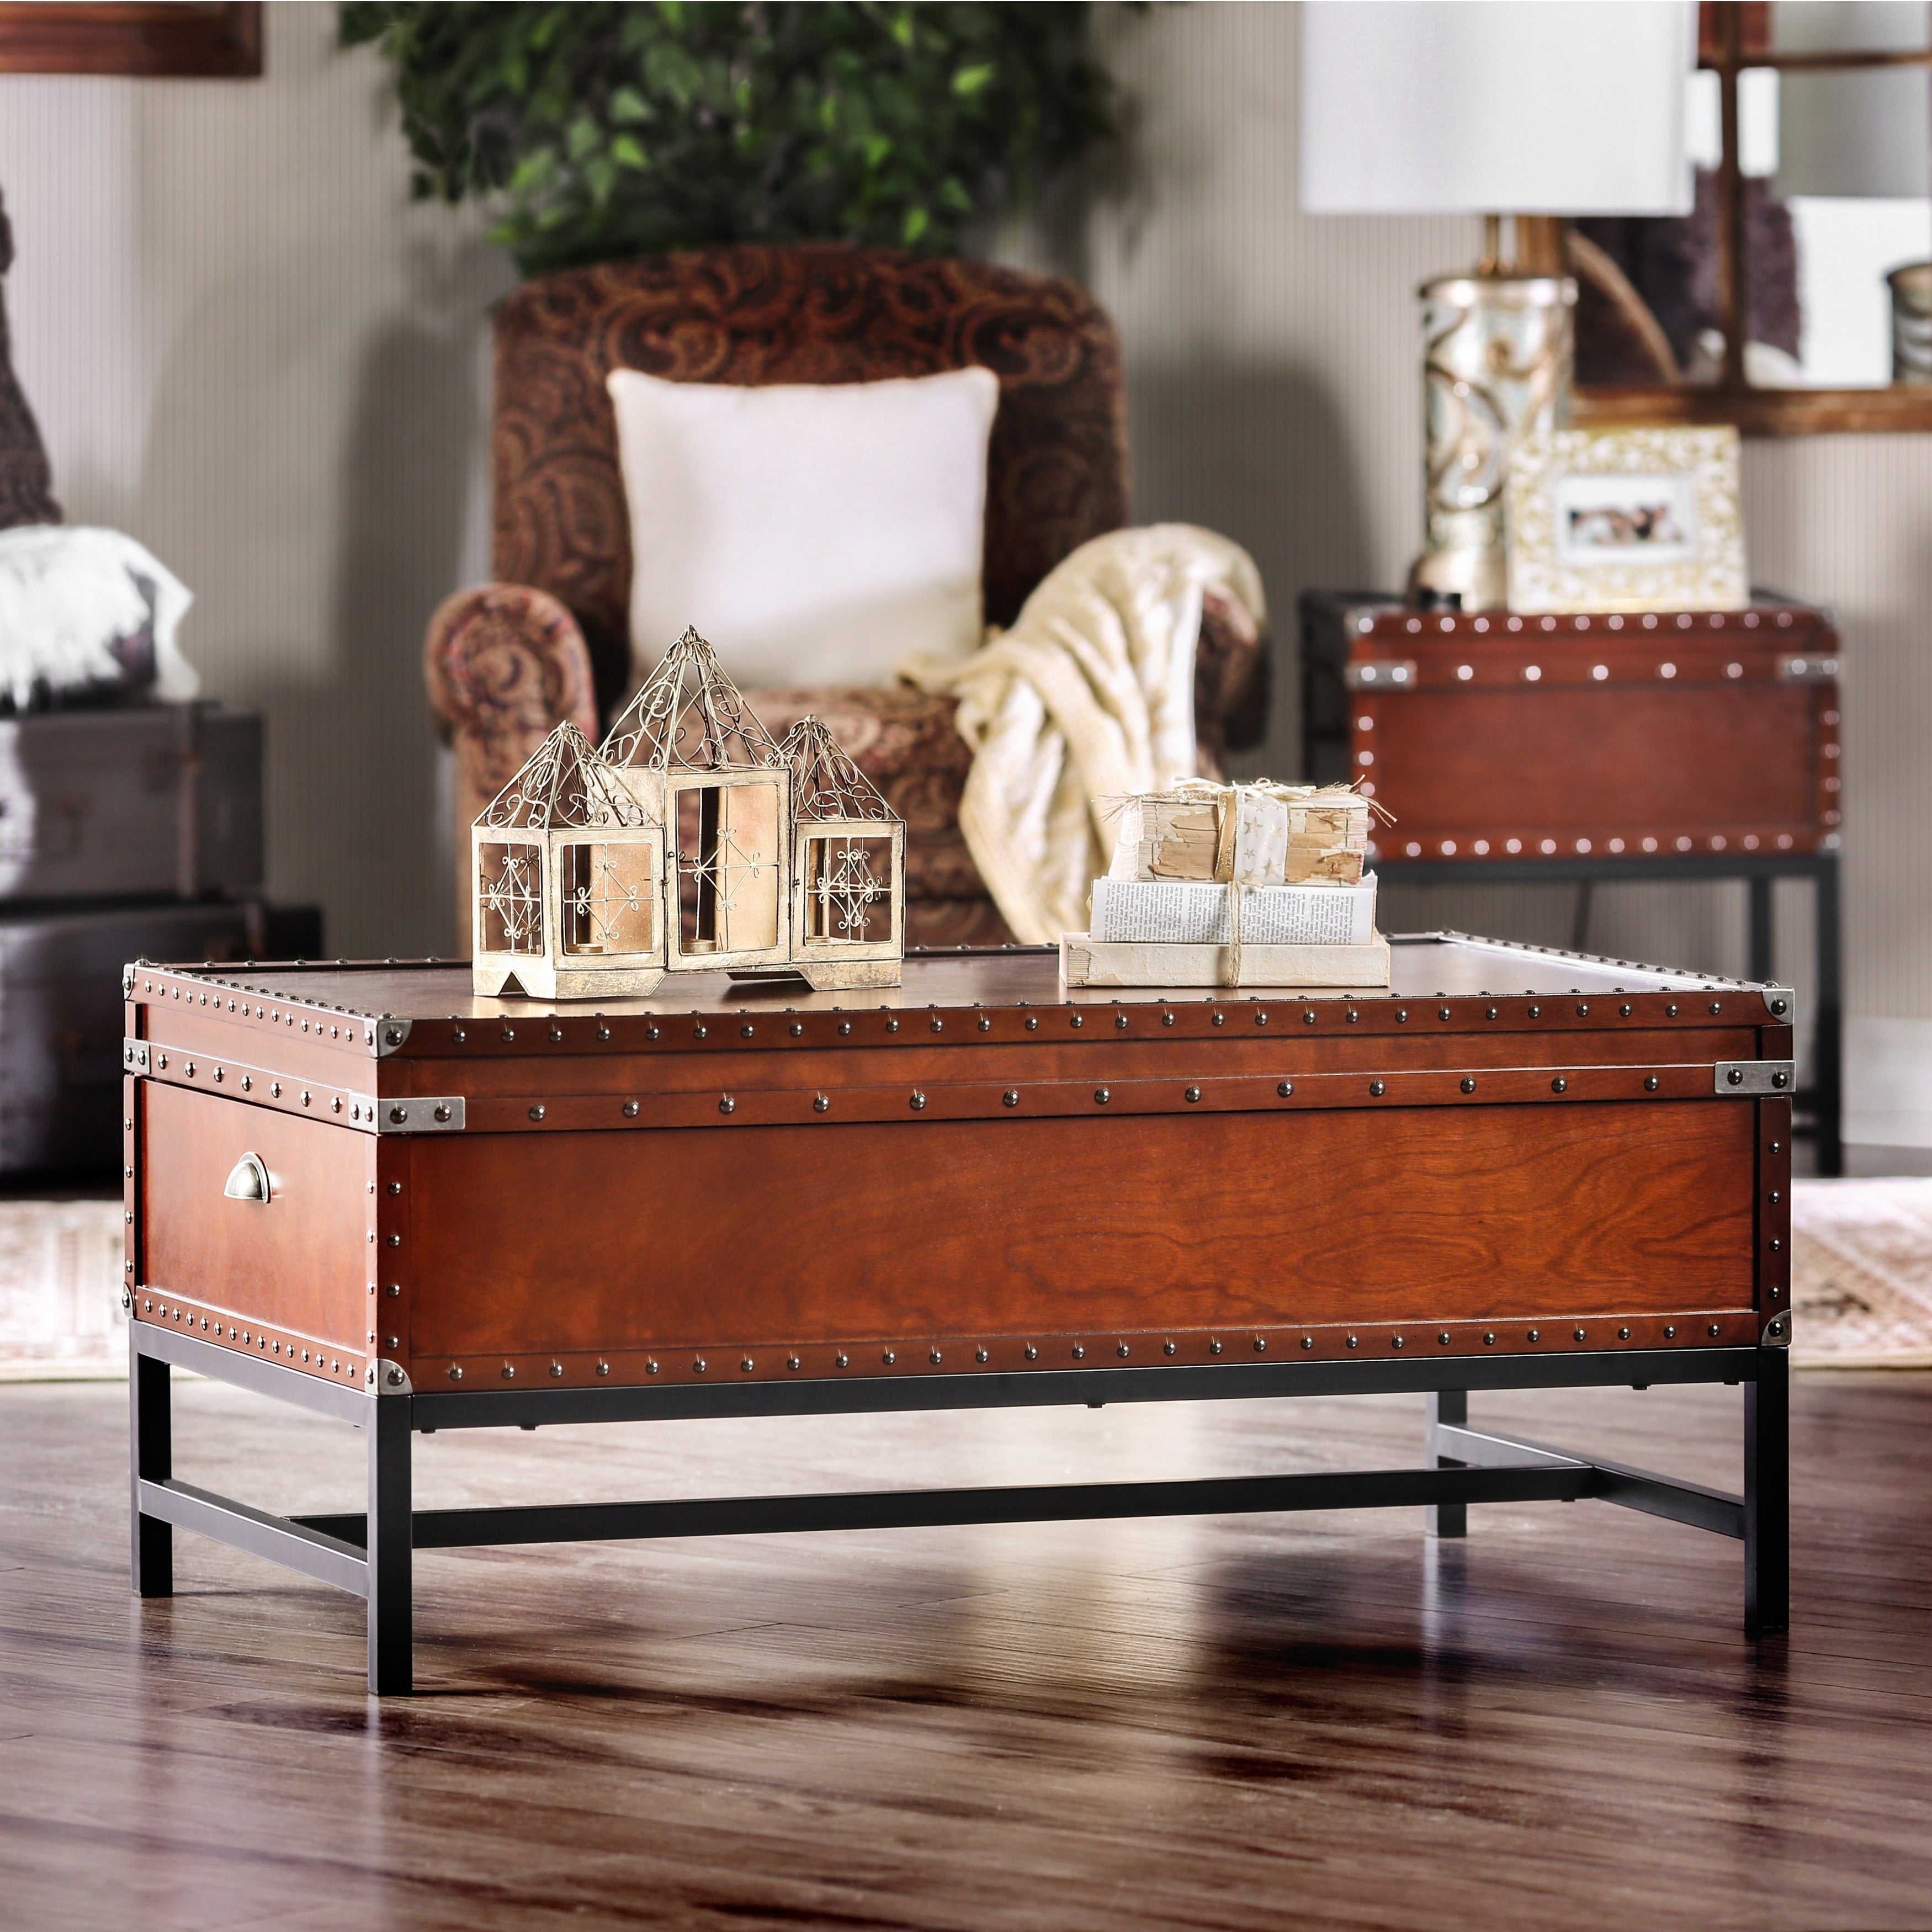 Furniture Of America Dravens Trunk Style Coffee Table Free Shipping Today 9913994